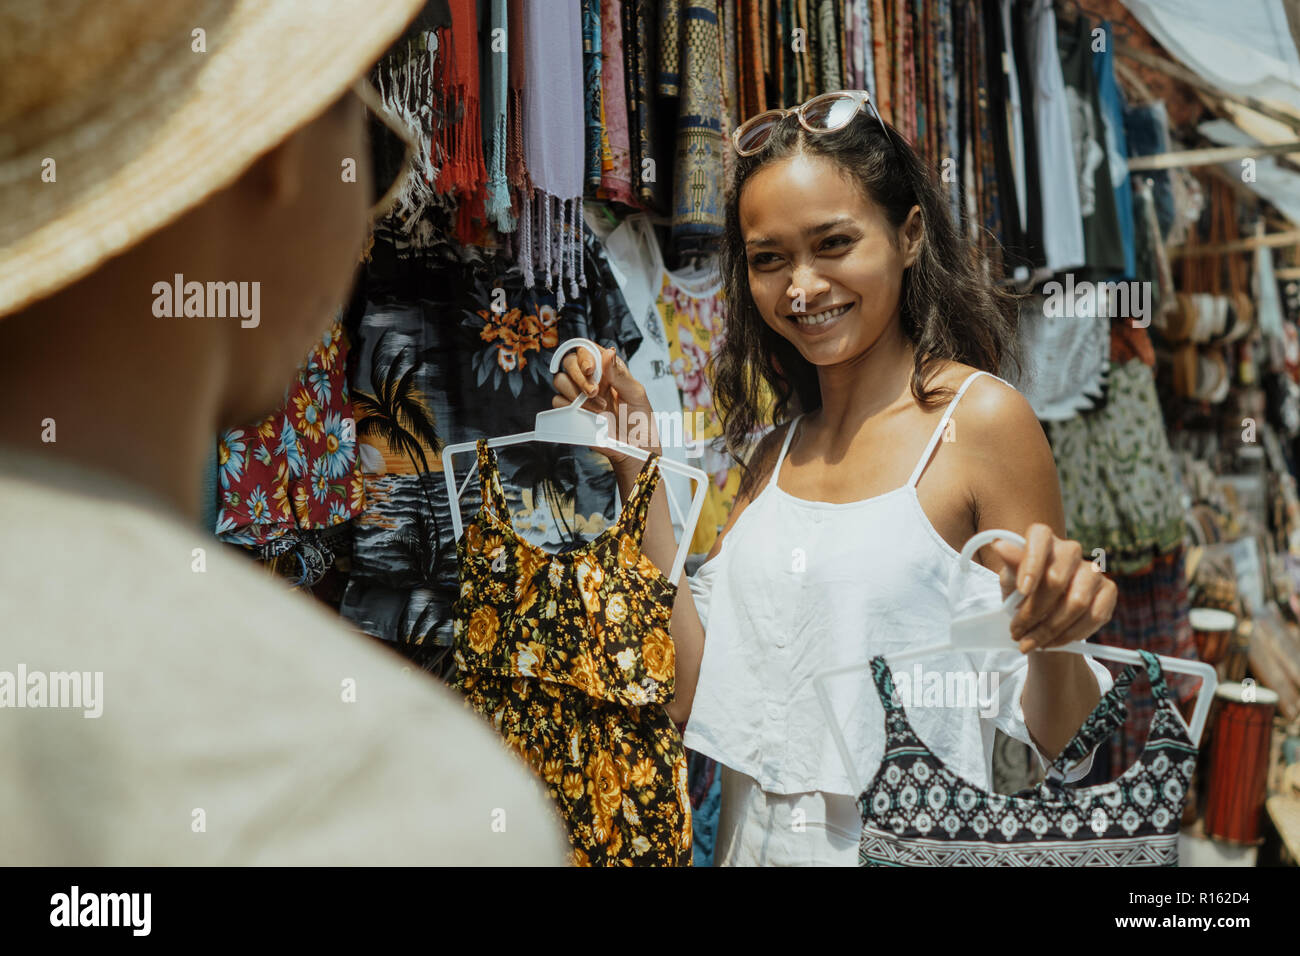 woman buying some clothes in souvenir shop - Stock Image